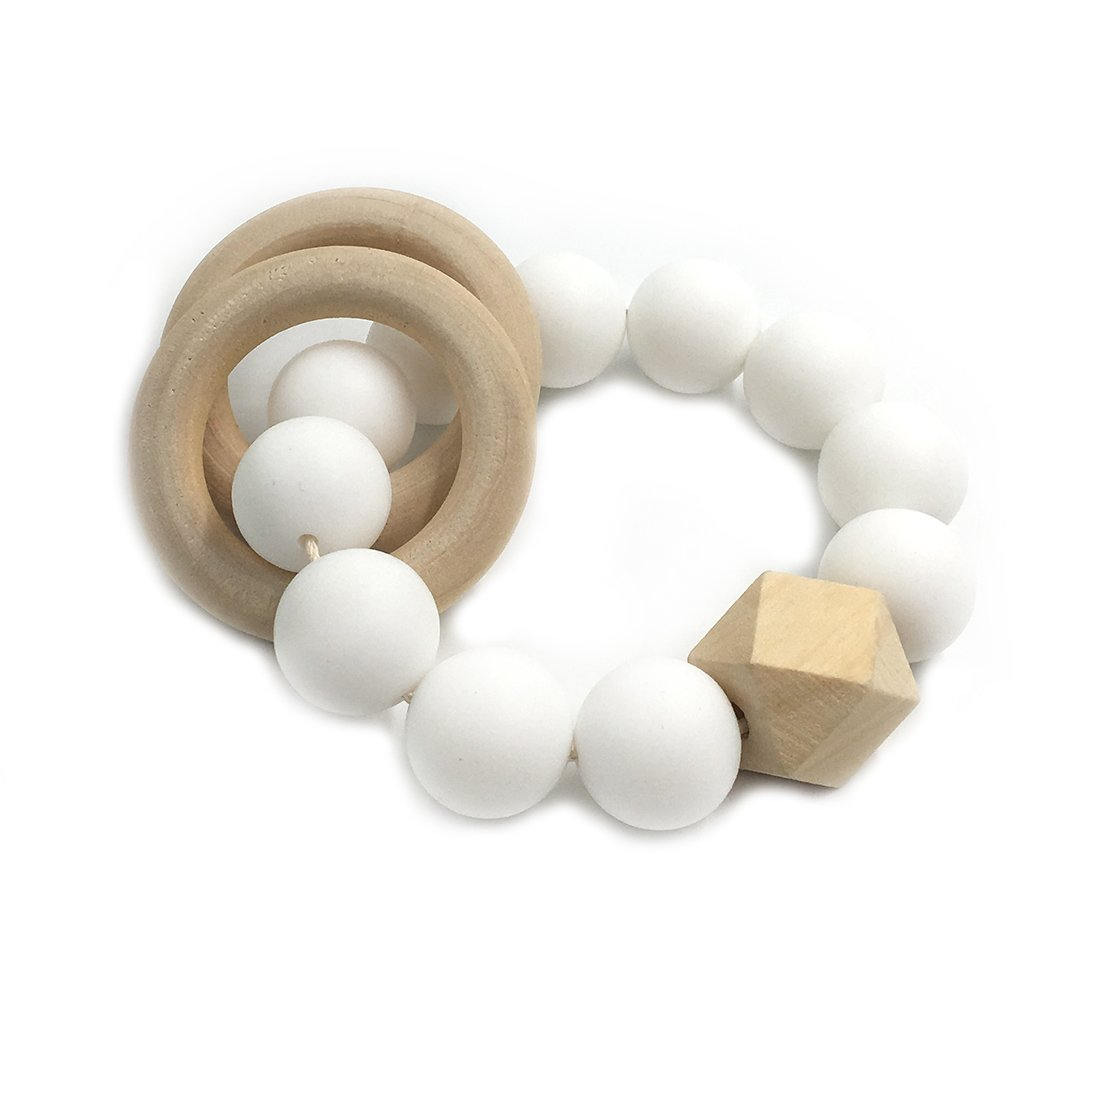 Amyster DIY Baby Teether Nursing Bracelet Food Grade Silicone Teether Wooden Teether Ring Teether Nature Safe Organic Infant Baby Bangle Teether Toys